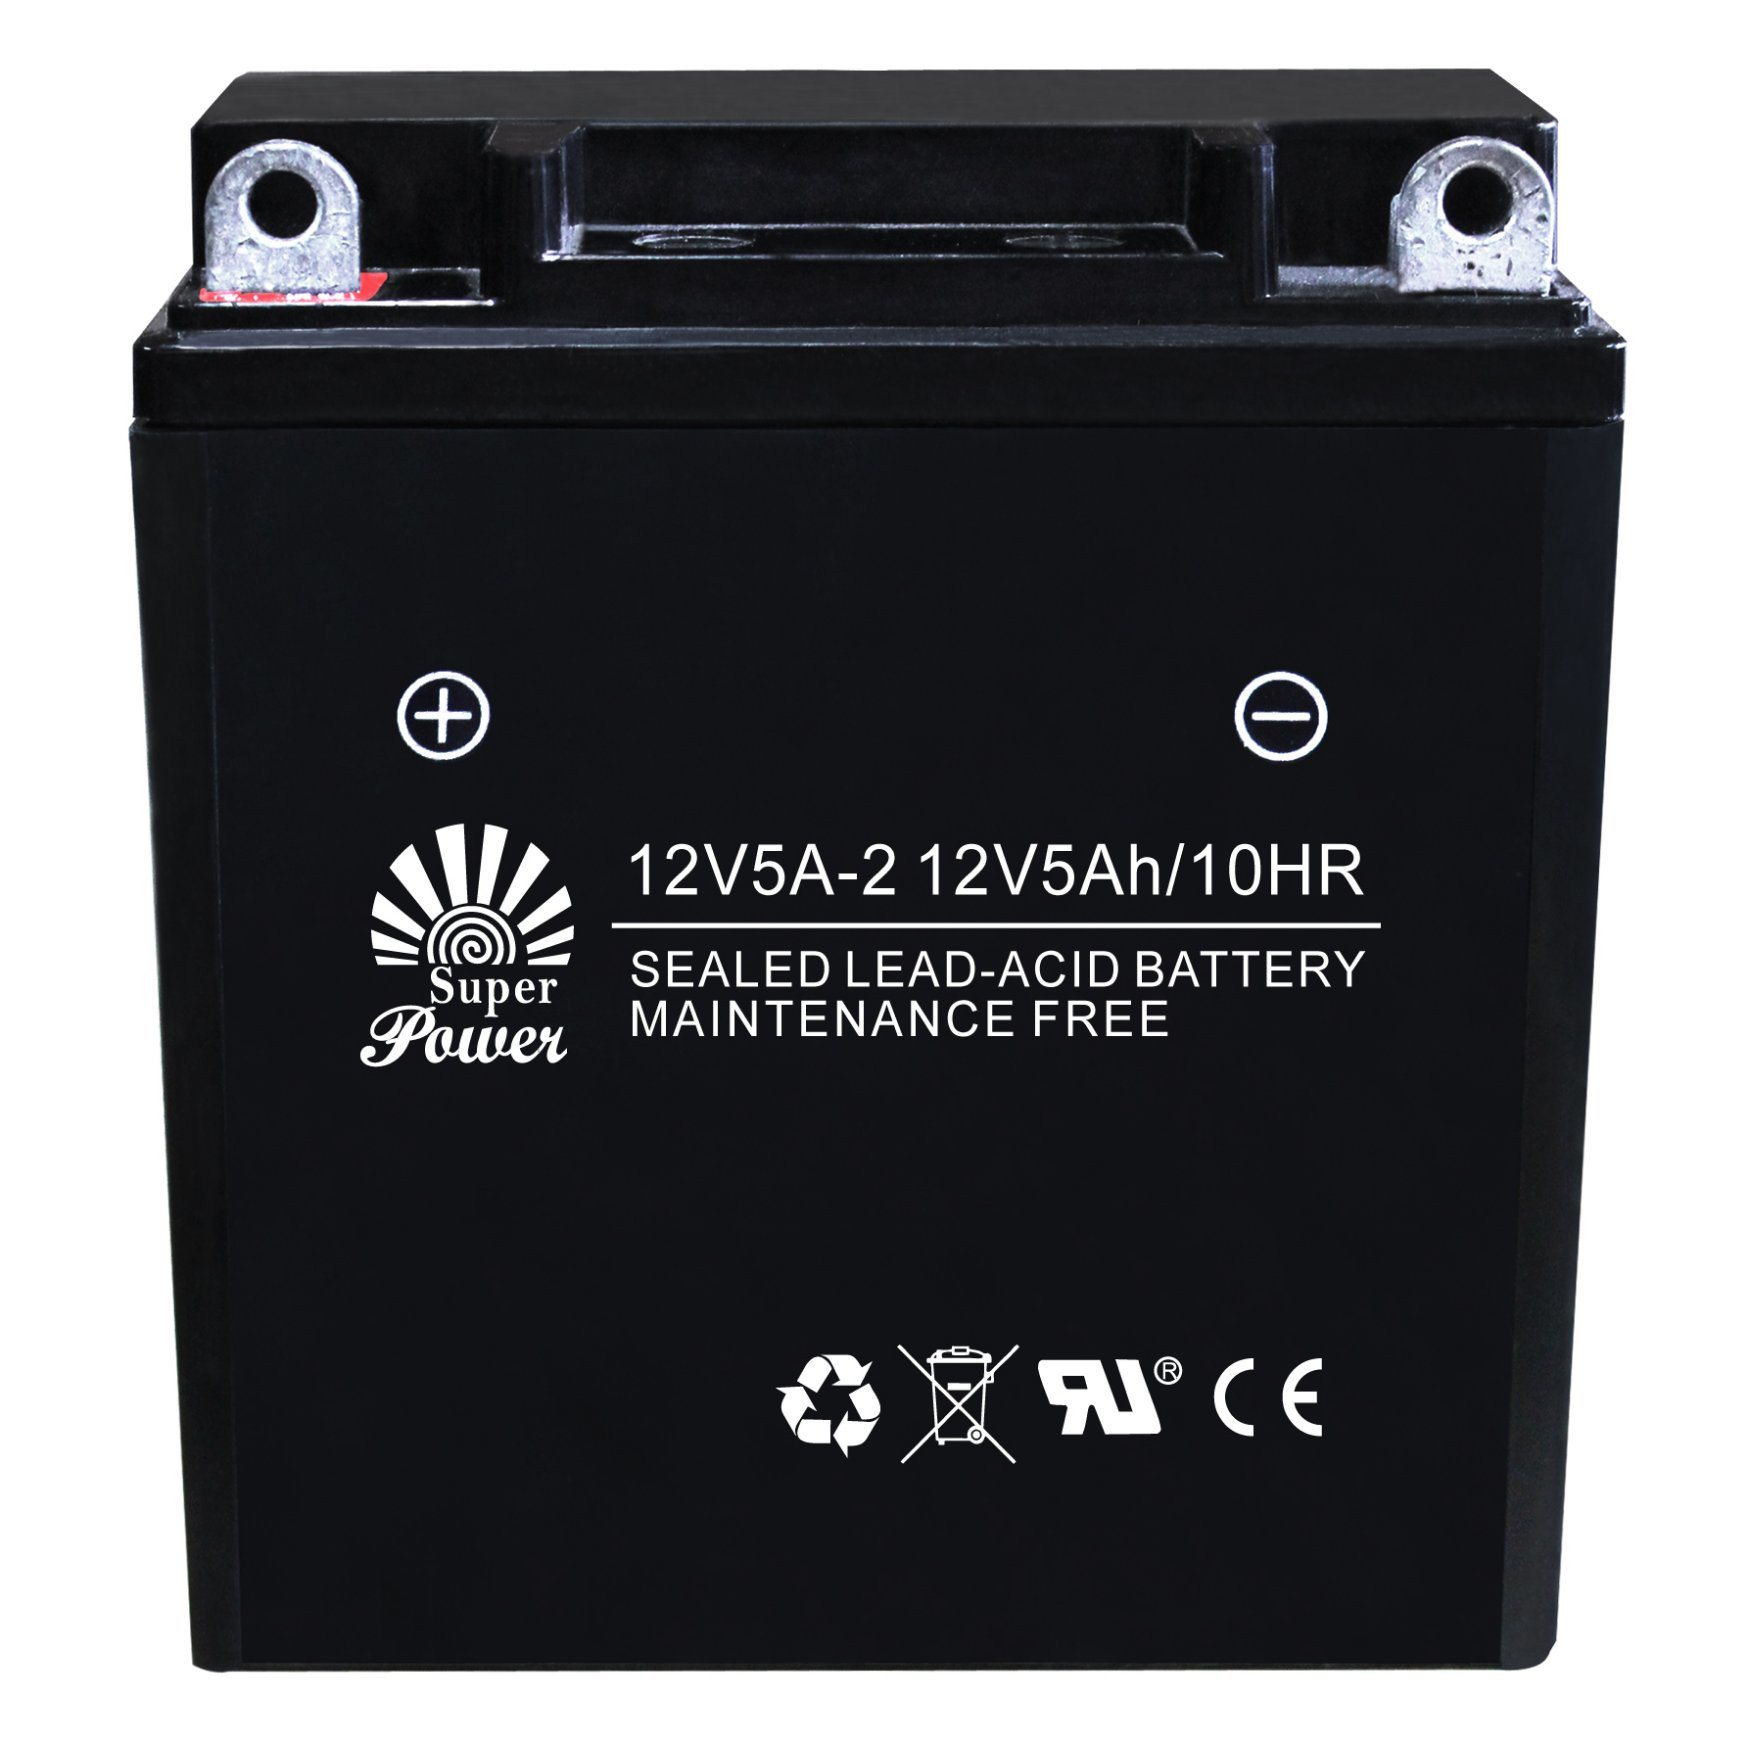 VRLA Motorcycle Battery 12V 5ah with CE UL Certificate Called 12V5A-2